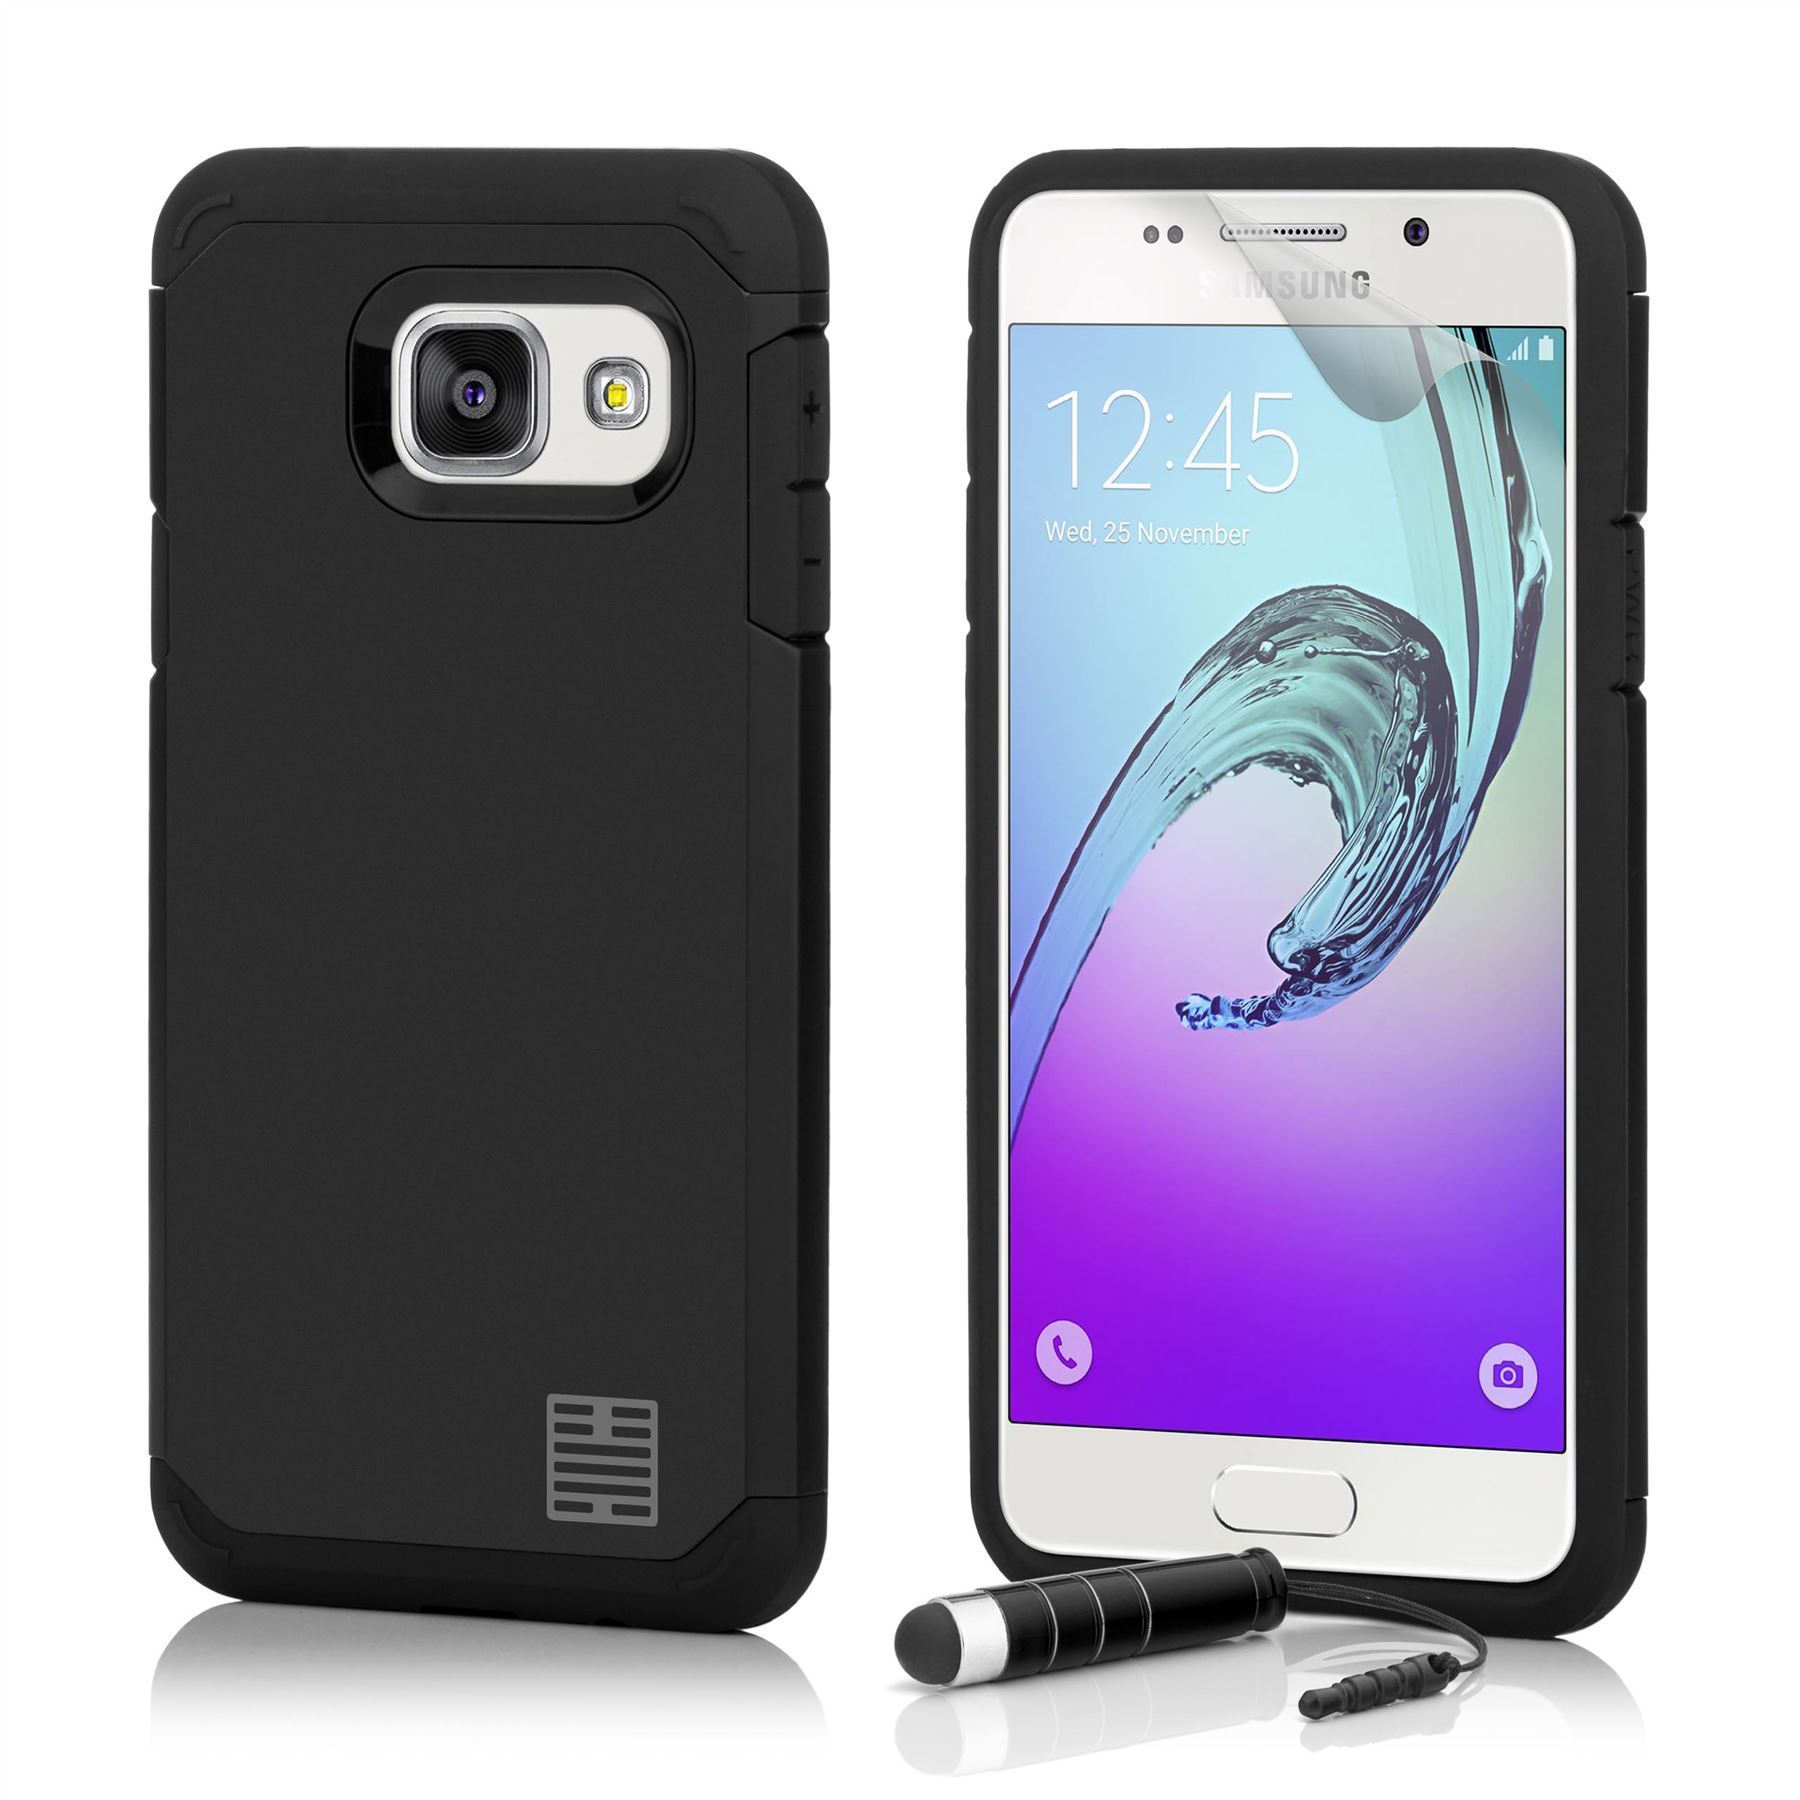 32nd Slim Armour Defender Case Cover For Samsung Galaxy A5 Sm A510 Original Clear Casing 2016 Picture 4 Of 6